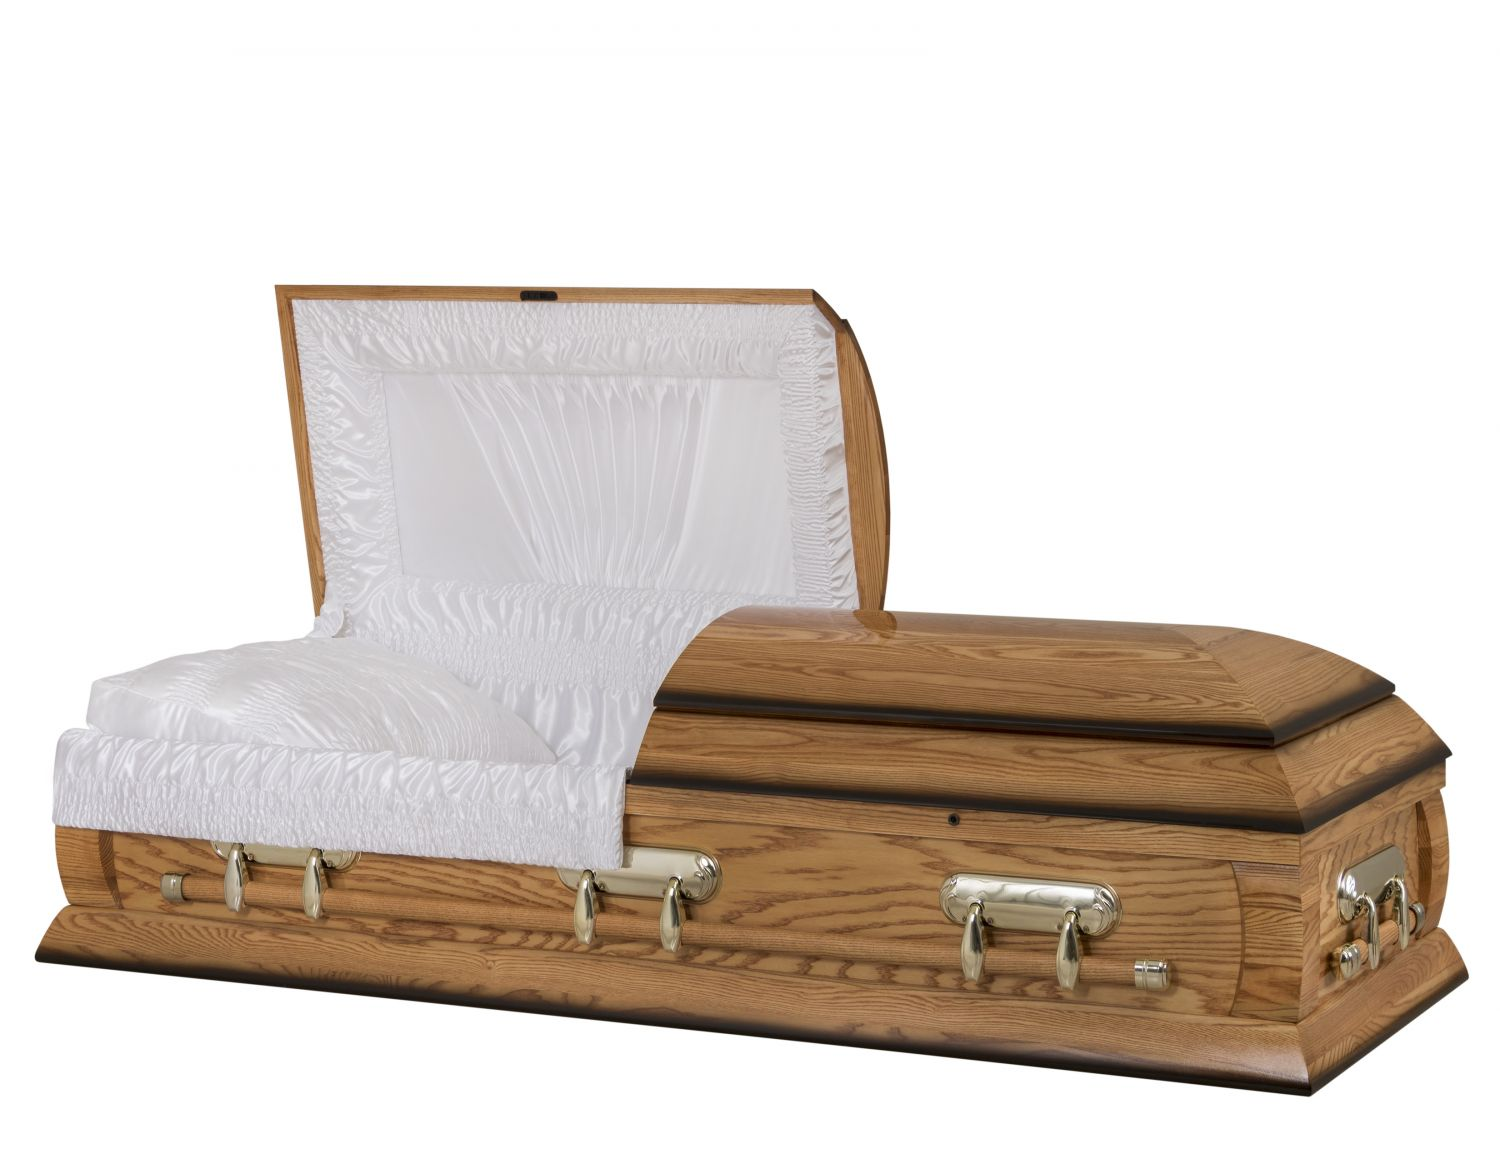 Concept Caskets 40216-00031-N ASH CASKET POLISHED SATIN MEDIUM WOOD FIBER NO H2510S-4    3 X 1 BRUNTONE